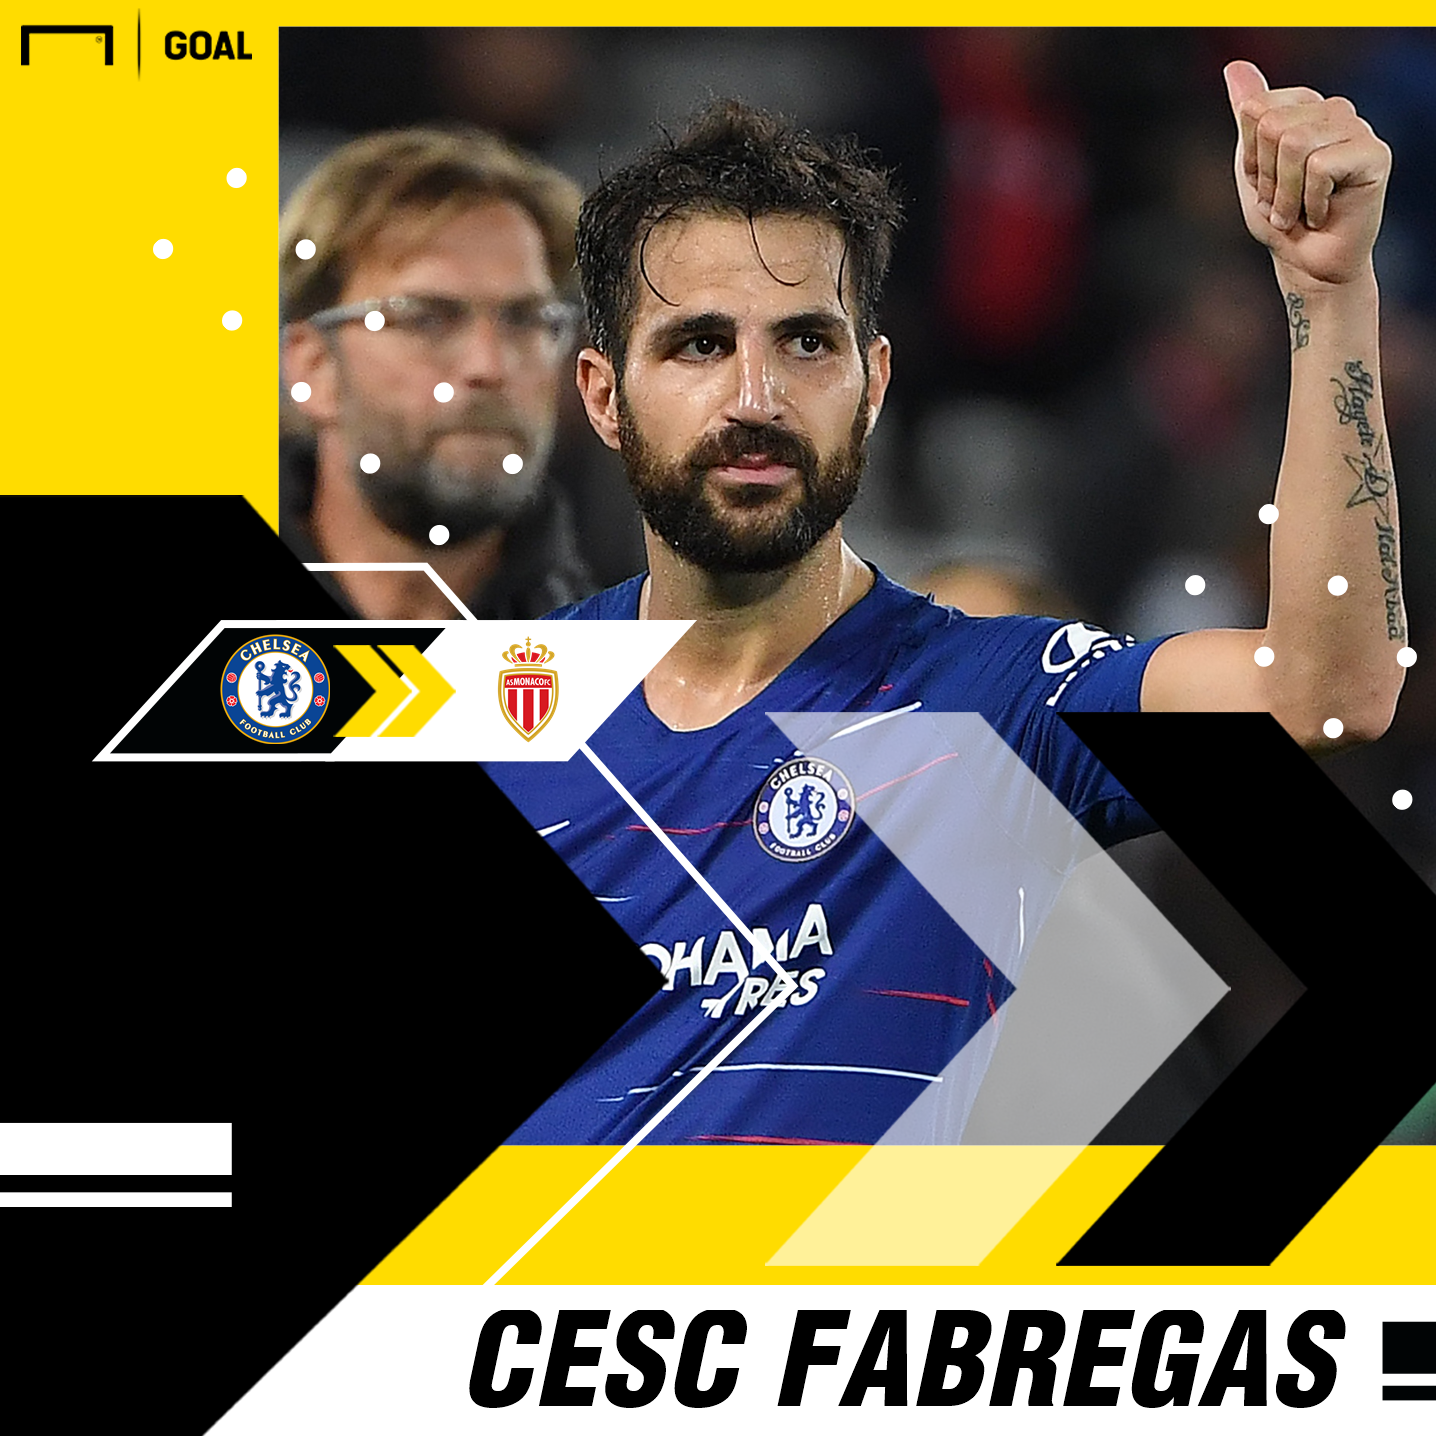 Monaco sign Chelsea's Fabregas on three-and-a-half-year deal